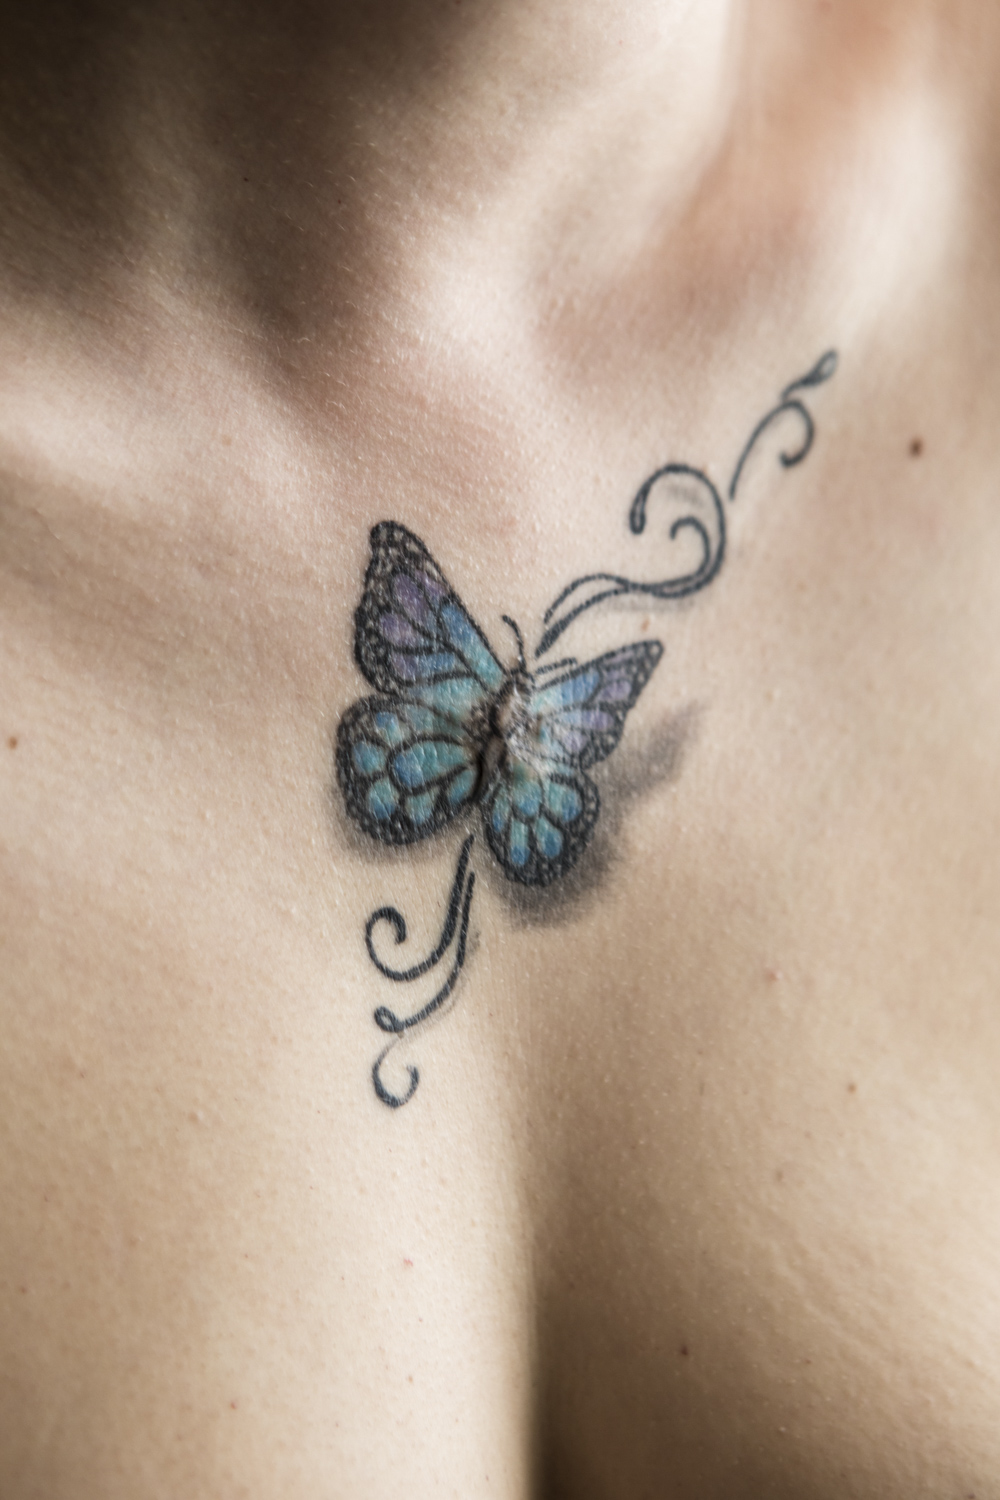 The center of the butterfly covers a stab wound on Wiktorija's chest.